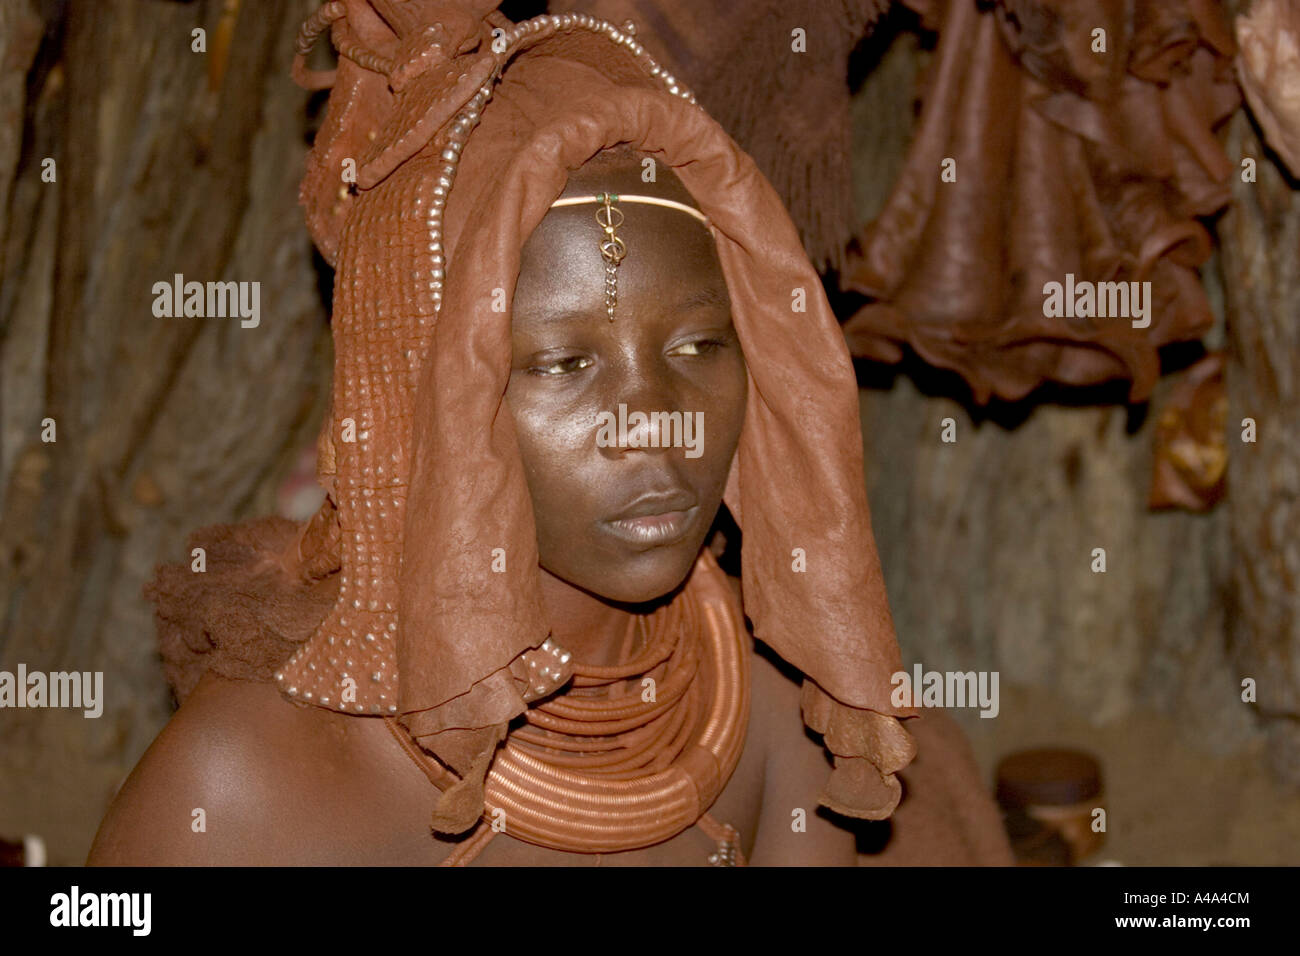 Himba woman with head decoration for mariage, Namibia - Stock Image